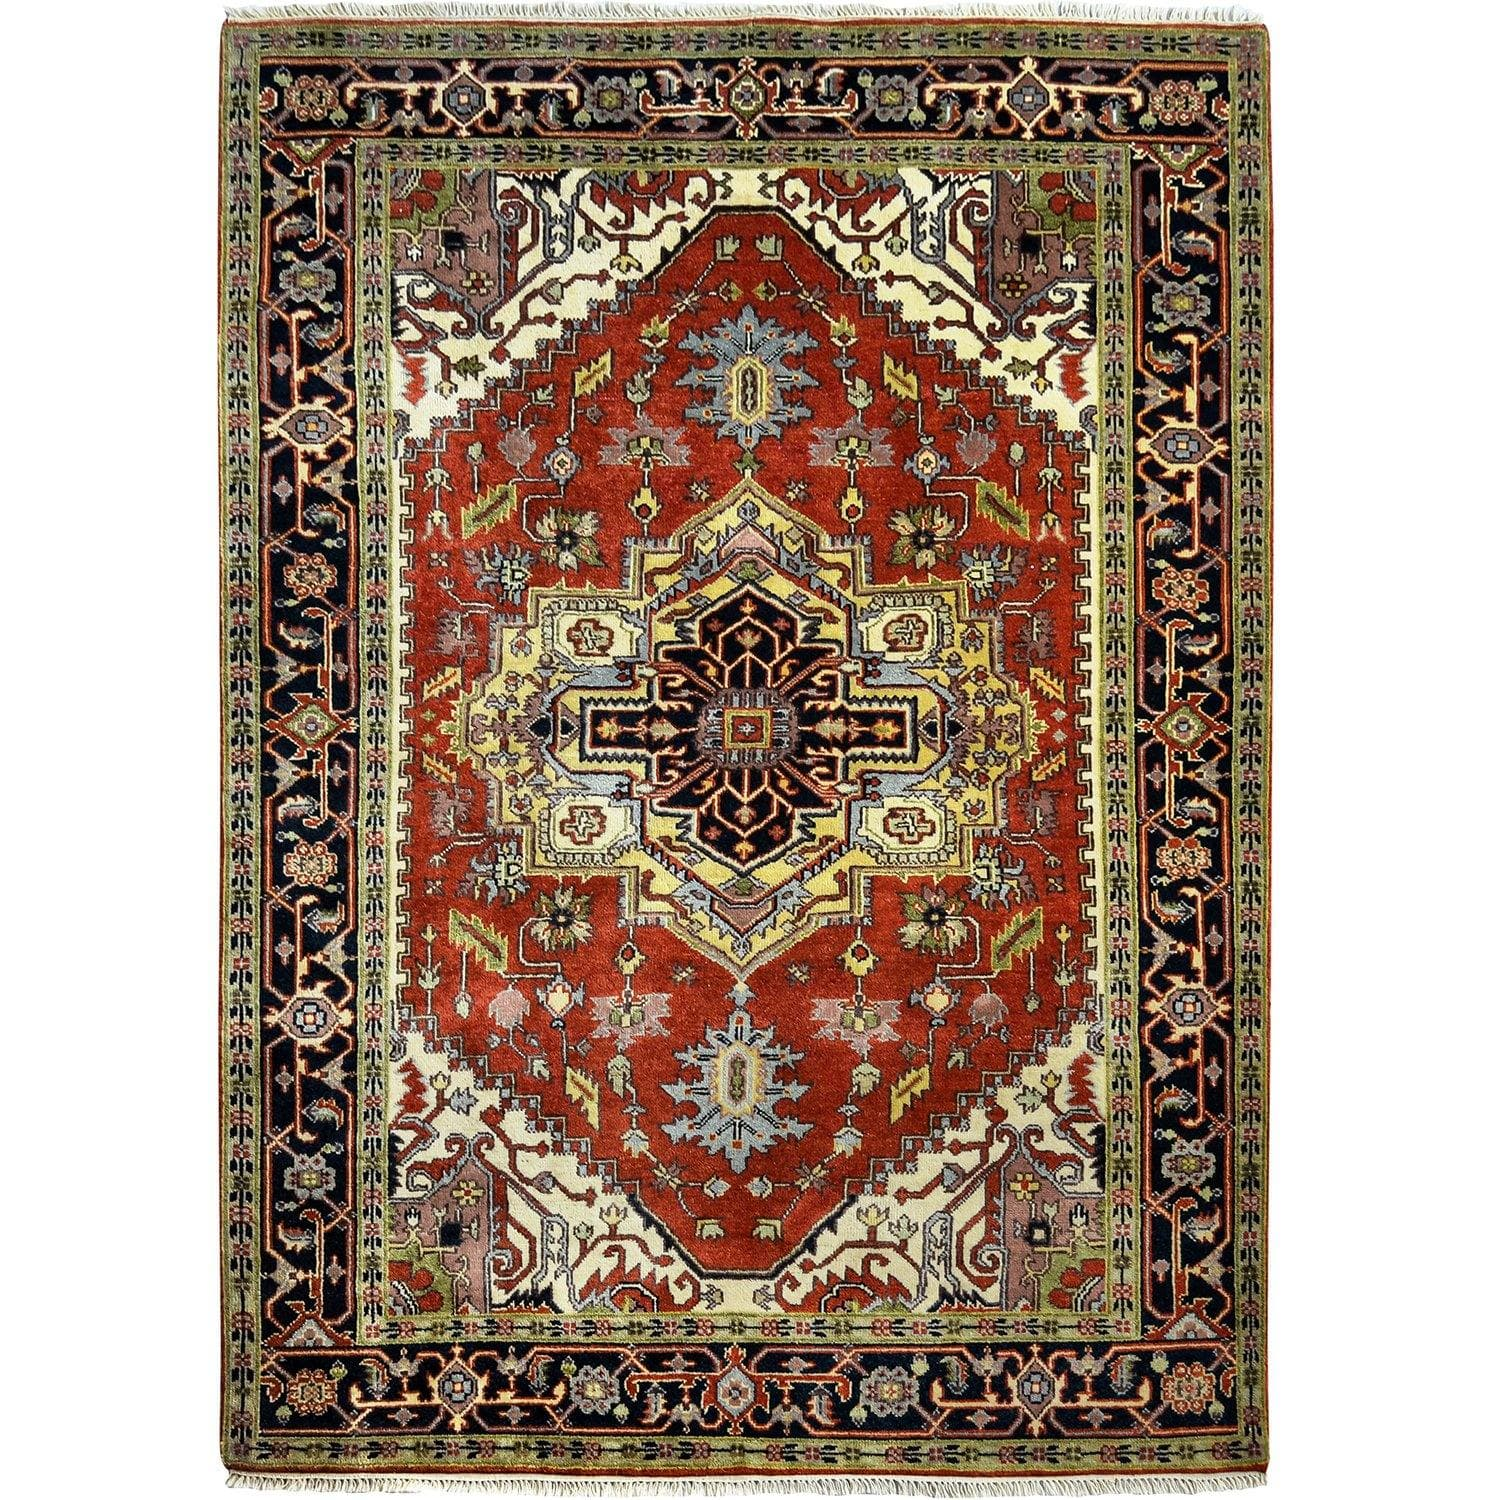 Fine Hand-knotted Wool Heriz Rug 187cm x 277cm Persian-Rug | House-of-Haghi | NewMarket | Auckland | NZ | Handmade Persian Rugs | Hand Knotted Persian Rugs